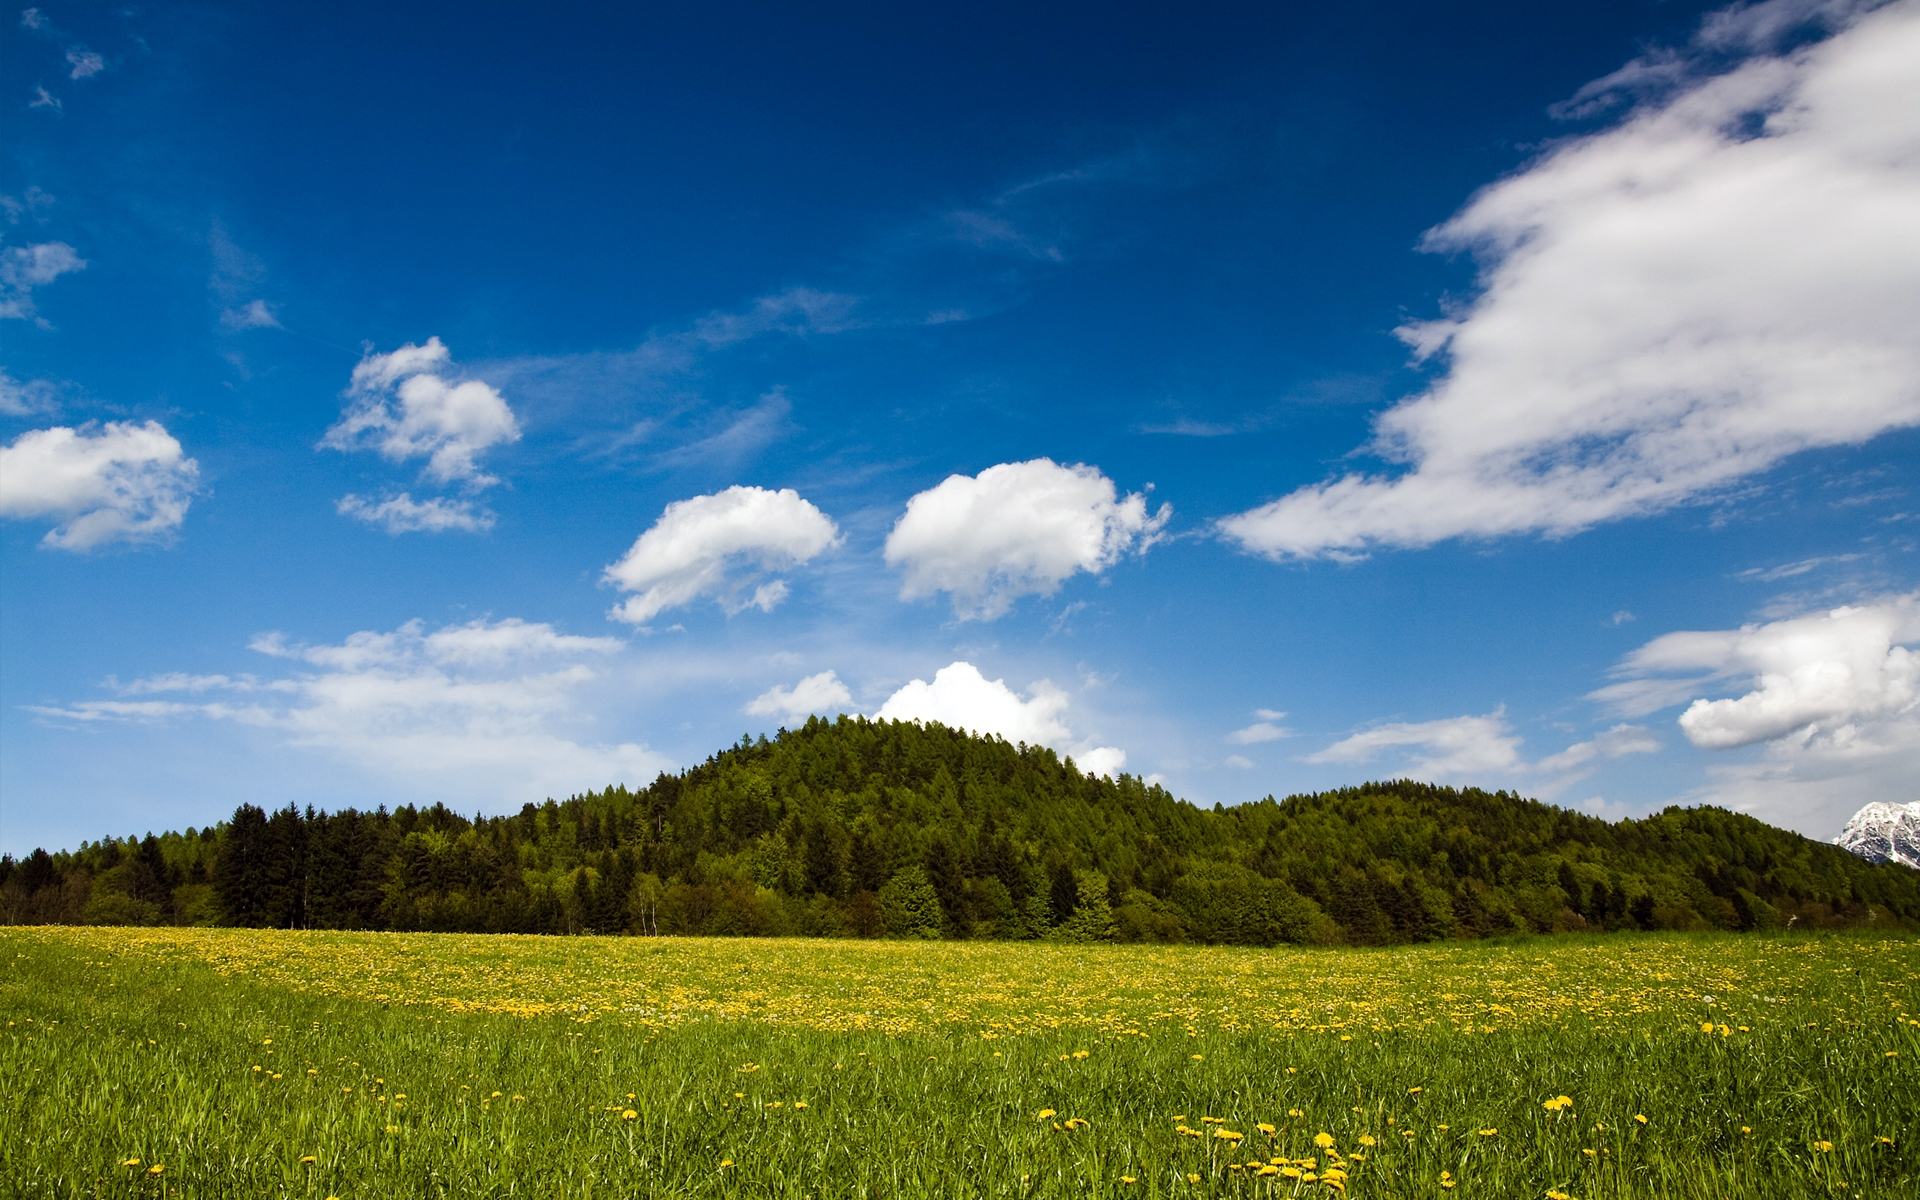 Sunny Day Wallpapers, Natural Sunny Day Wallpapers, #18179